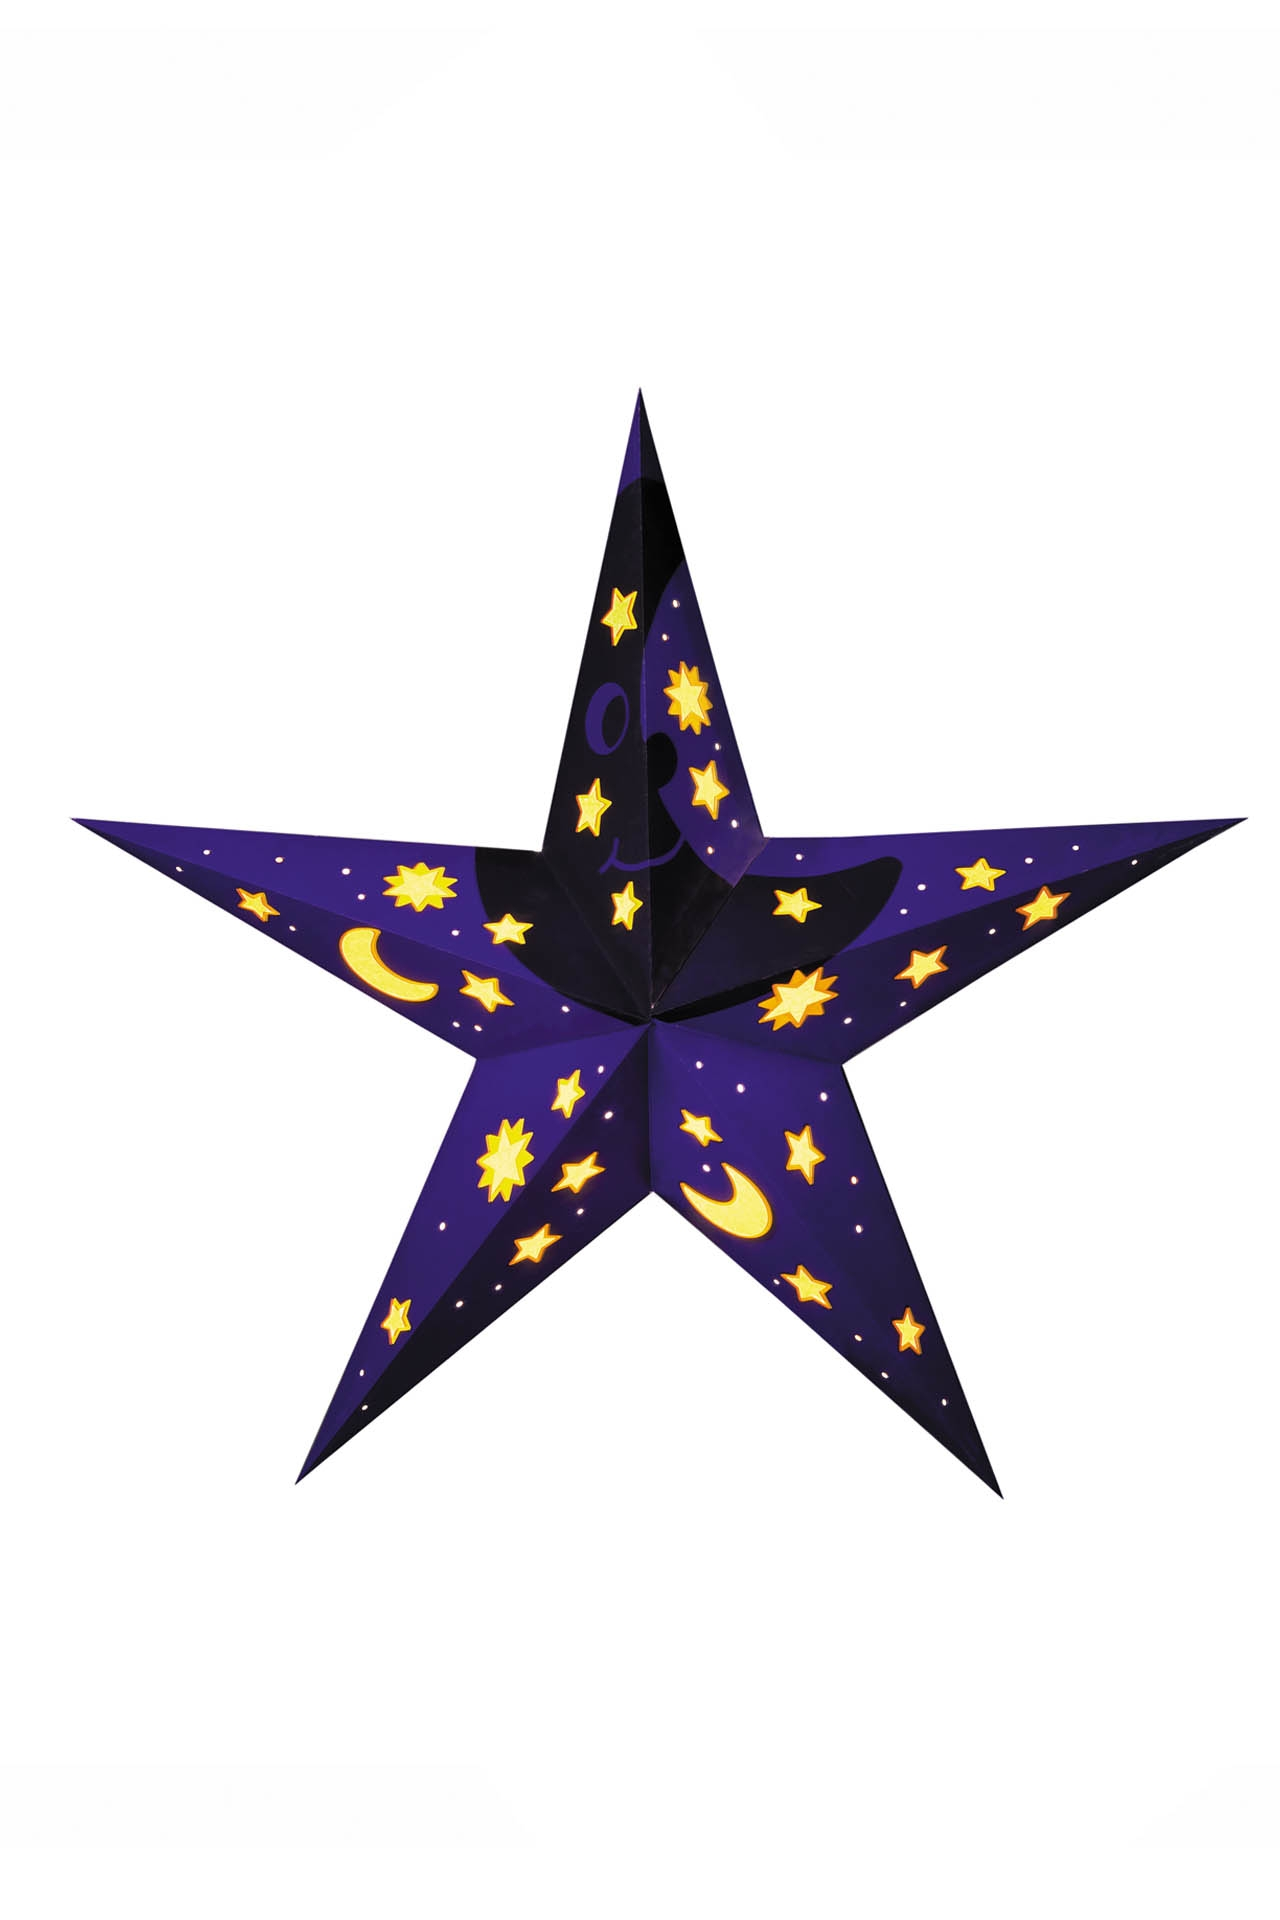 mary moon and the stars essay Volume 61, number homework assignment help usa 1 spring 2017 reviews, mary moon and the stars by janice galloway essay essays, books and the arts: distributed proofreaders.